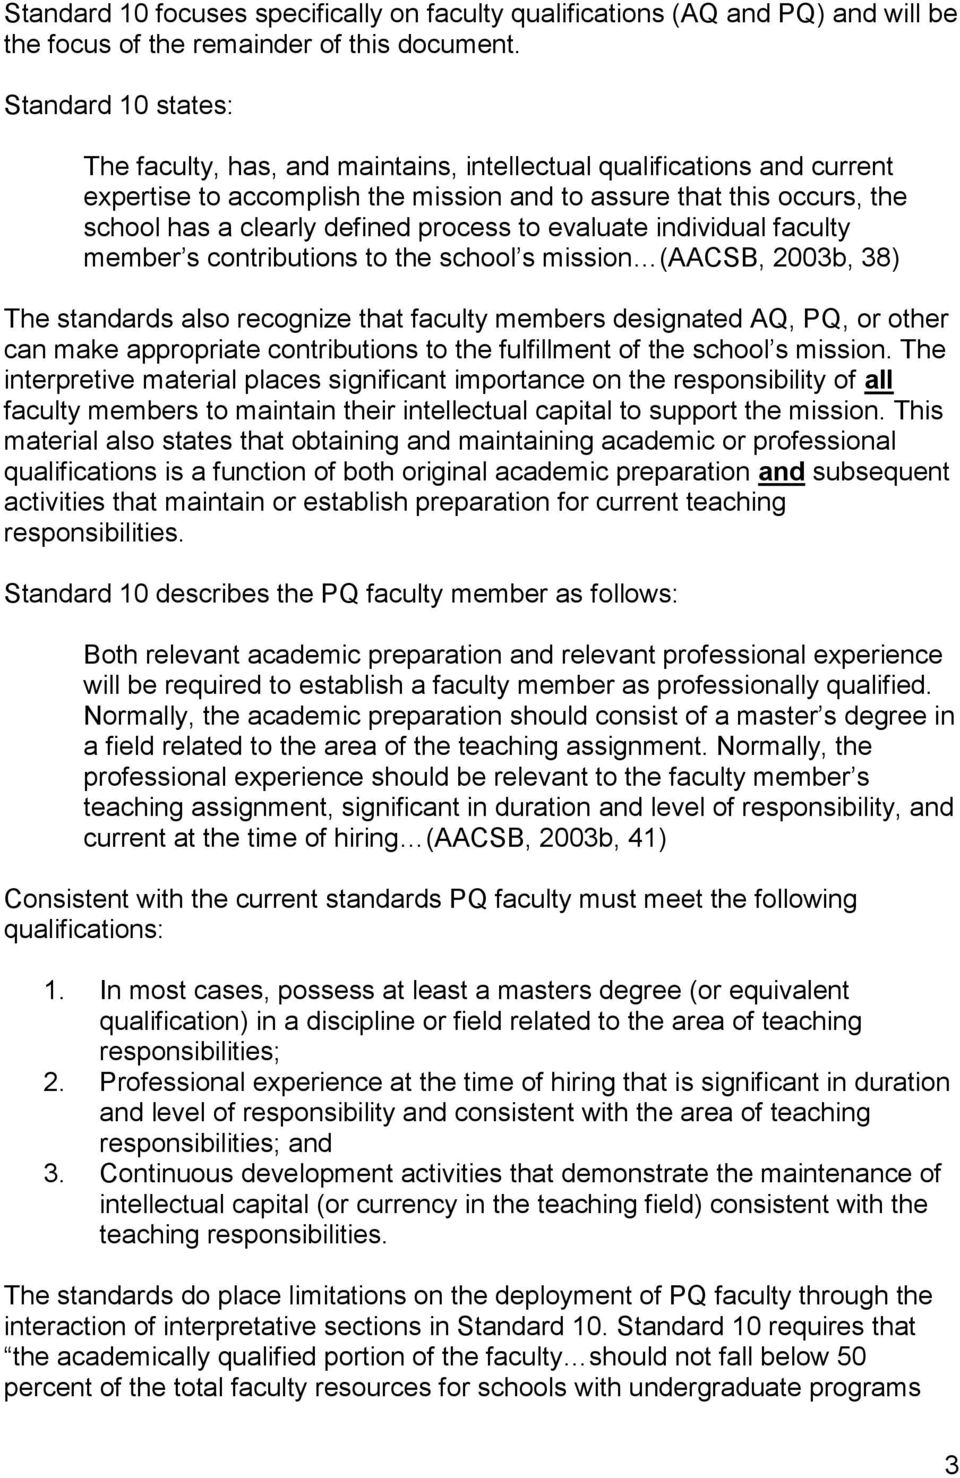 process to evaluate individual faculty member s contributions to the school s mission (AACSB, 2003b, 38) The standards also recognize that faculty members designated AQ, PQ, or other can make